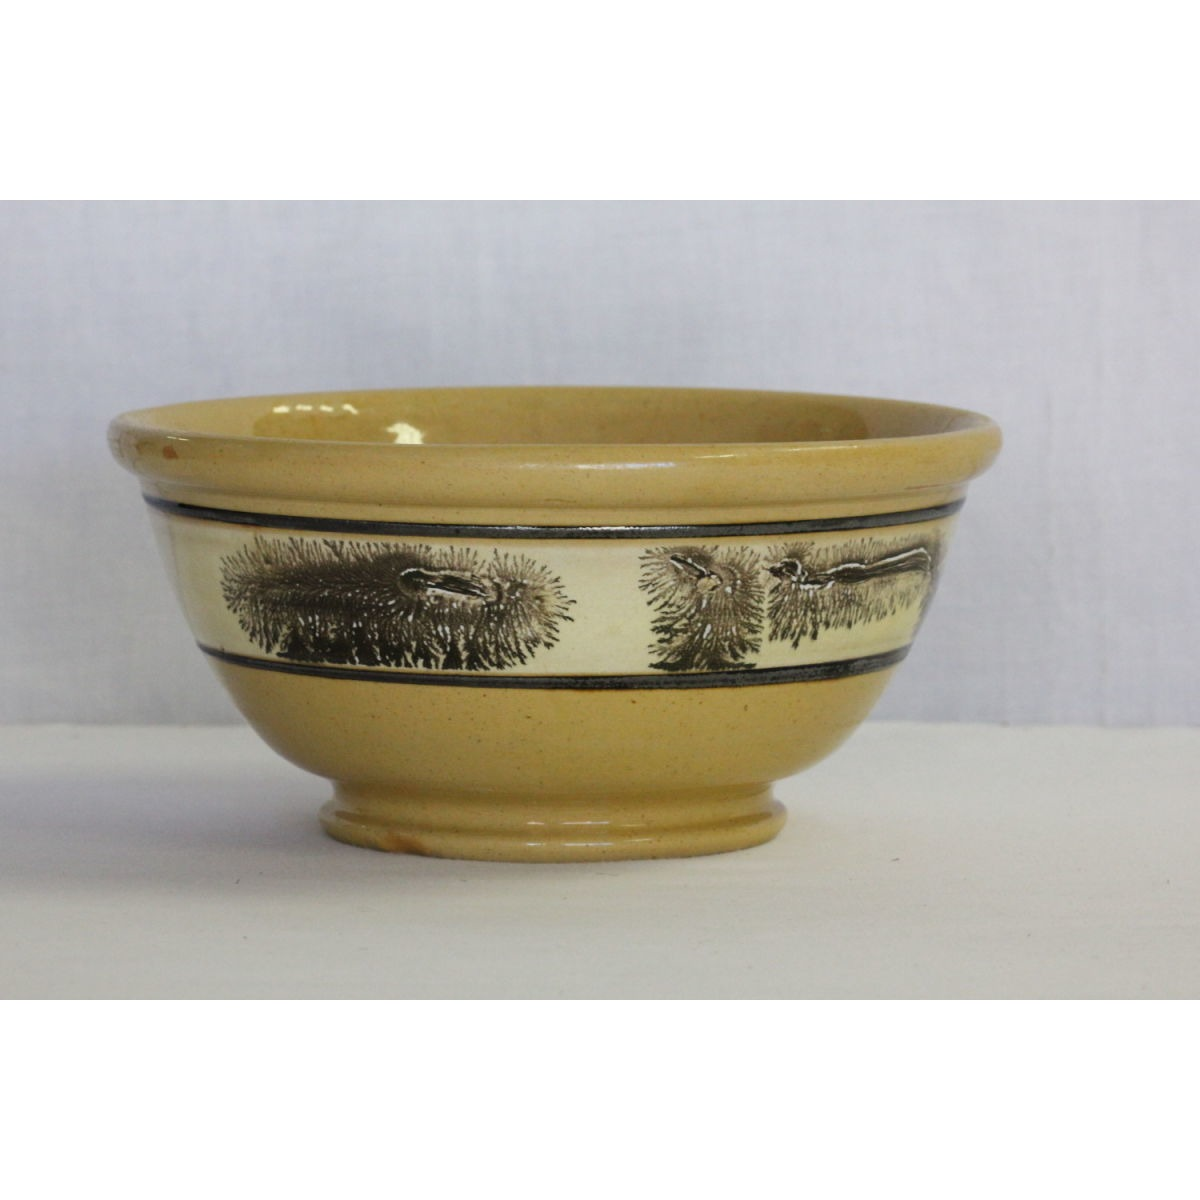 Incredible Black Seaweed-Decorated Yellowware Bowl